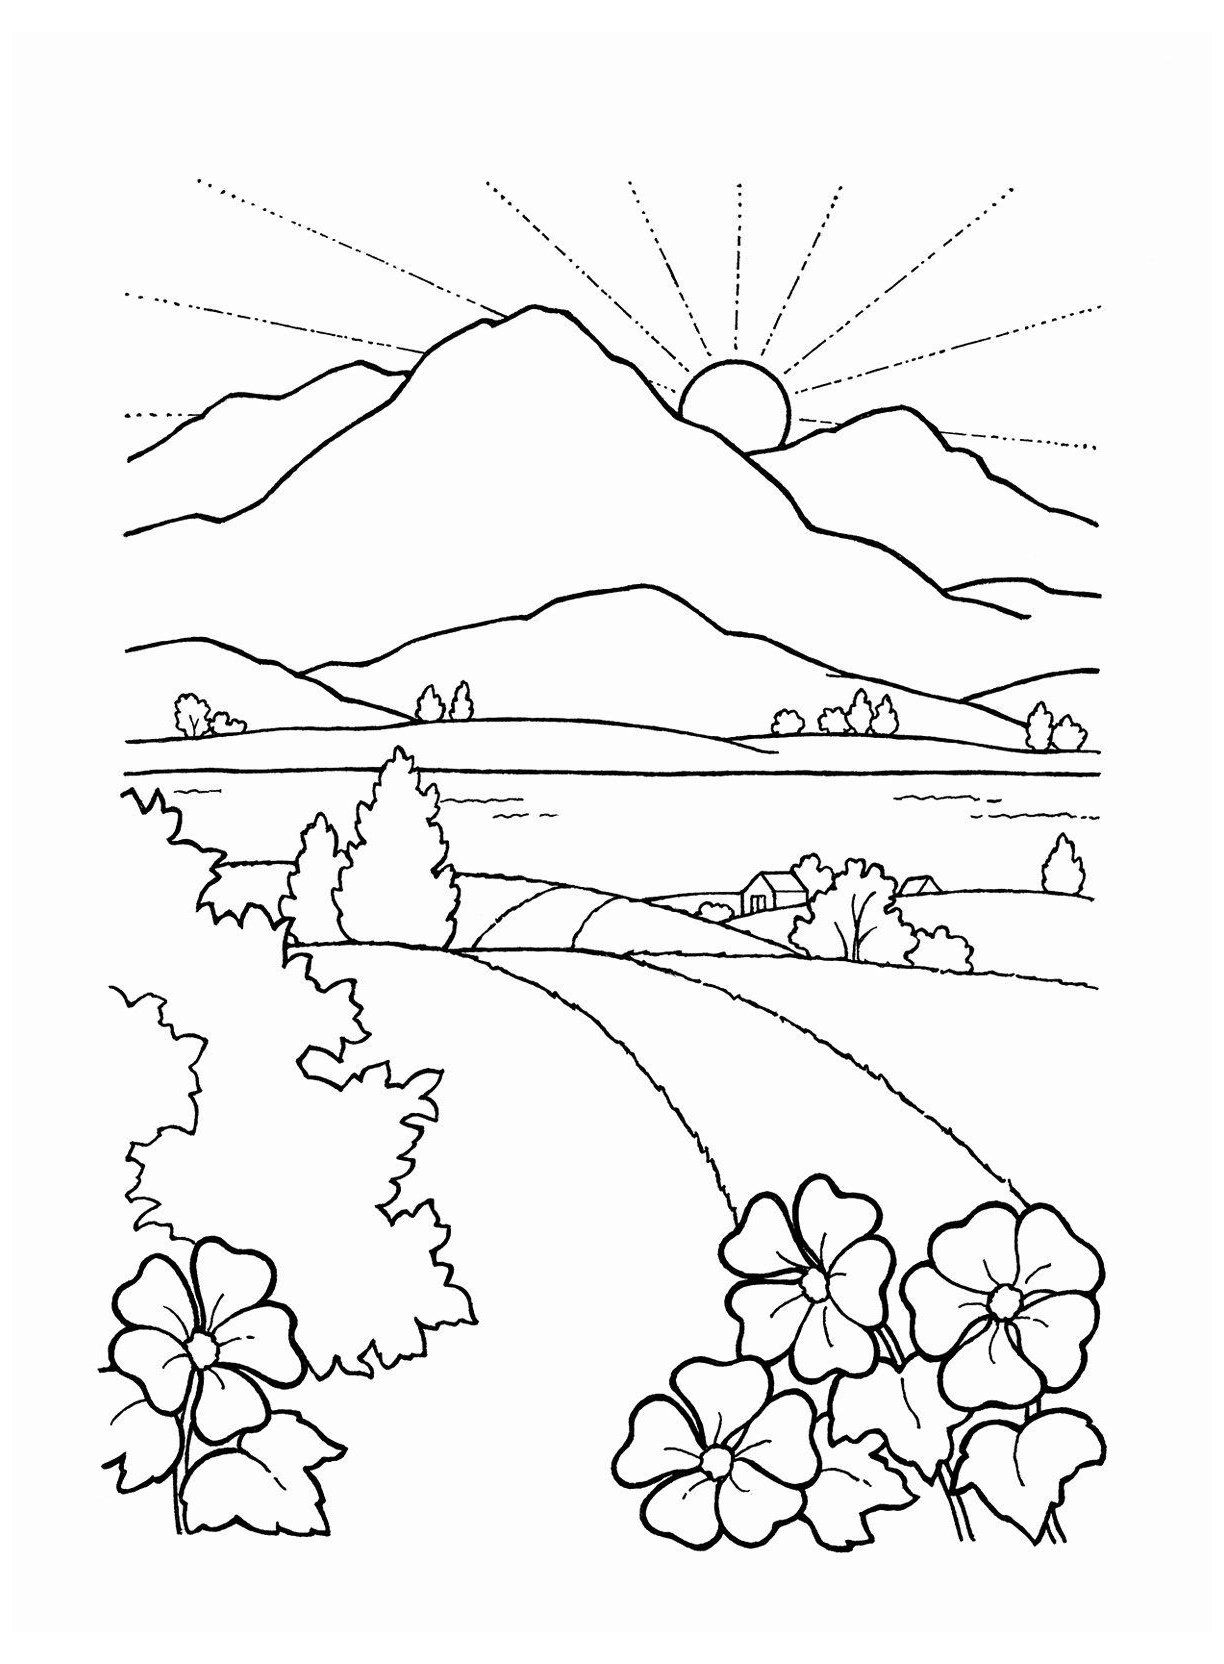 Sunset Coloring Pages For Adults Awesome Black And White Sunset Drawing At Getdrawings Sunset Col In 2020 Coloring Pages Nature Coloring Pages Scenery Drawing For Kids